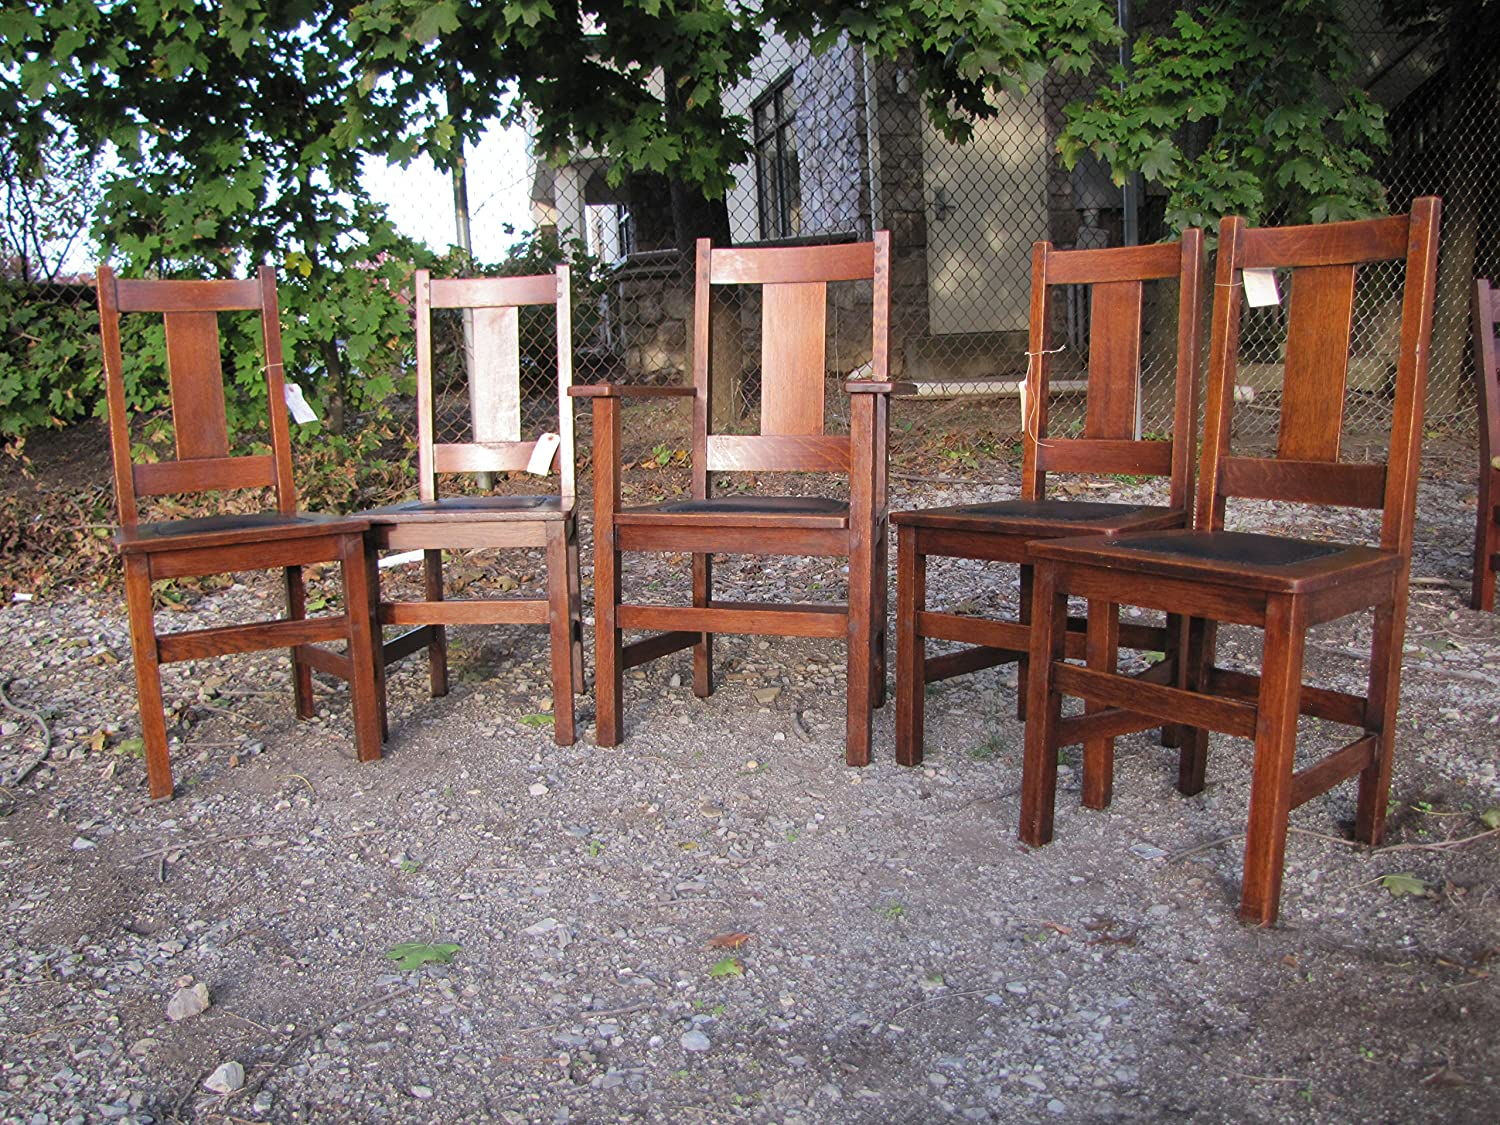 Amazon.com - Antique Set of 6 Limbert Dining Chairs w6 - Chairs